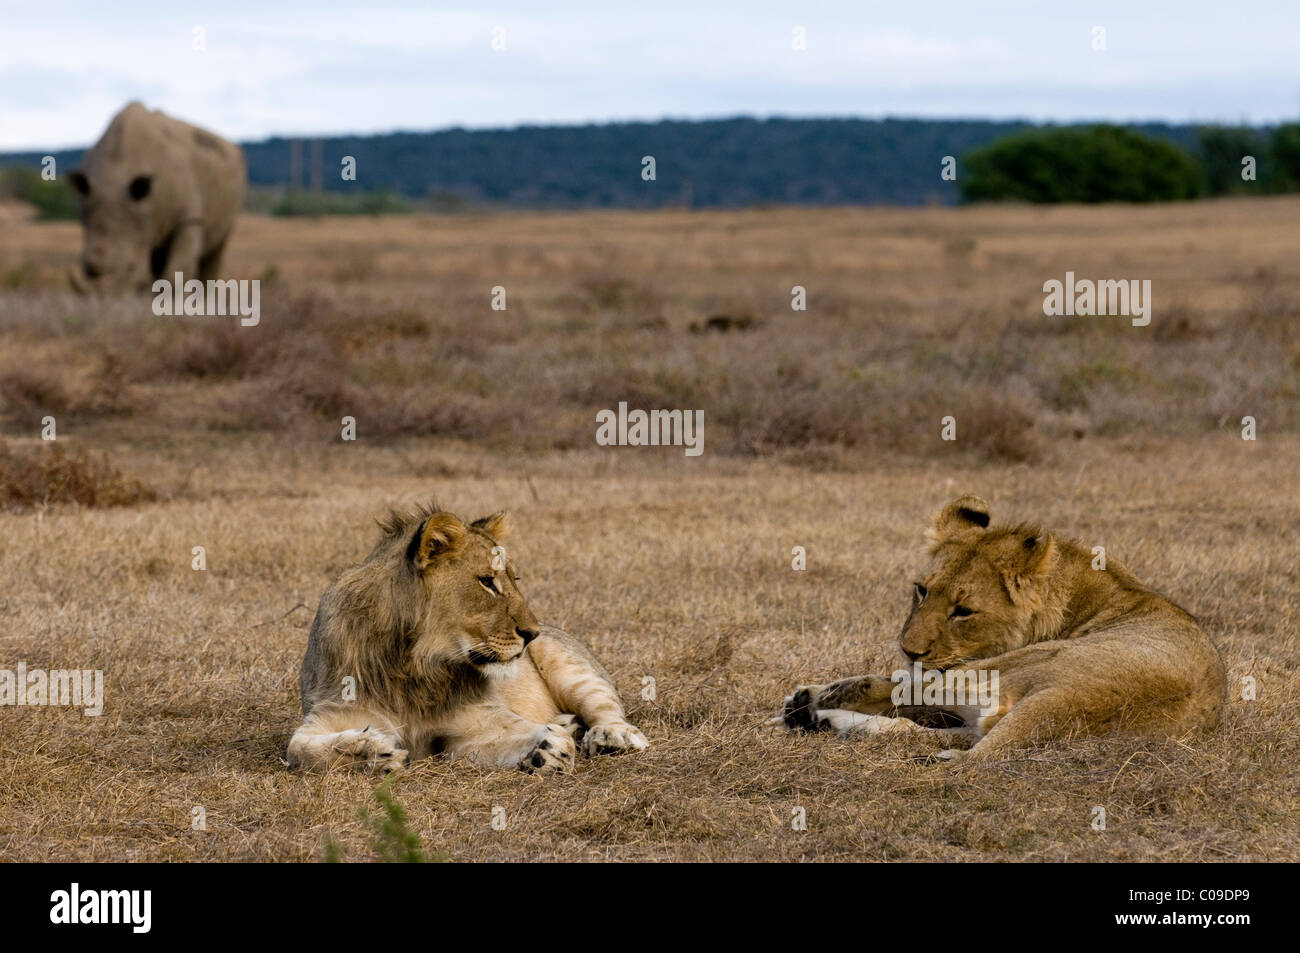 Young Lions and White Rhino, Kwandwe Game Reserve, Eastern Cape, South Africa - Stock Image